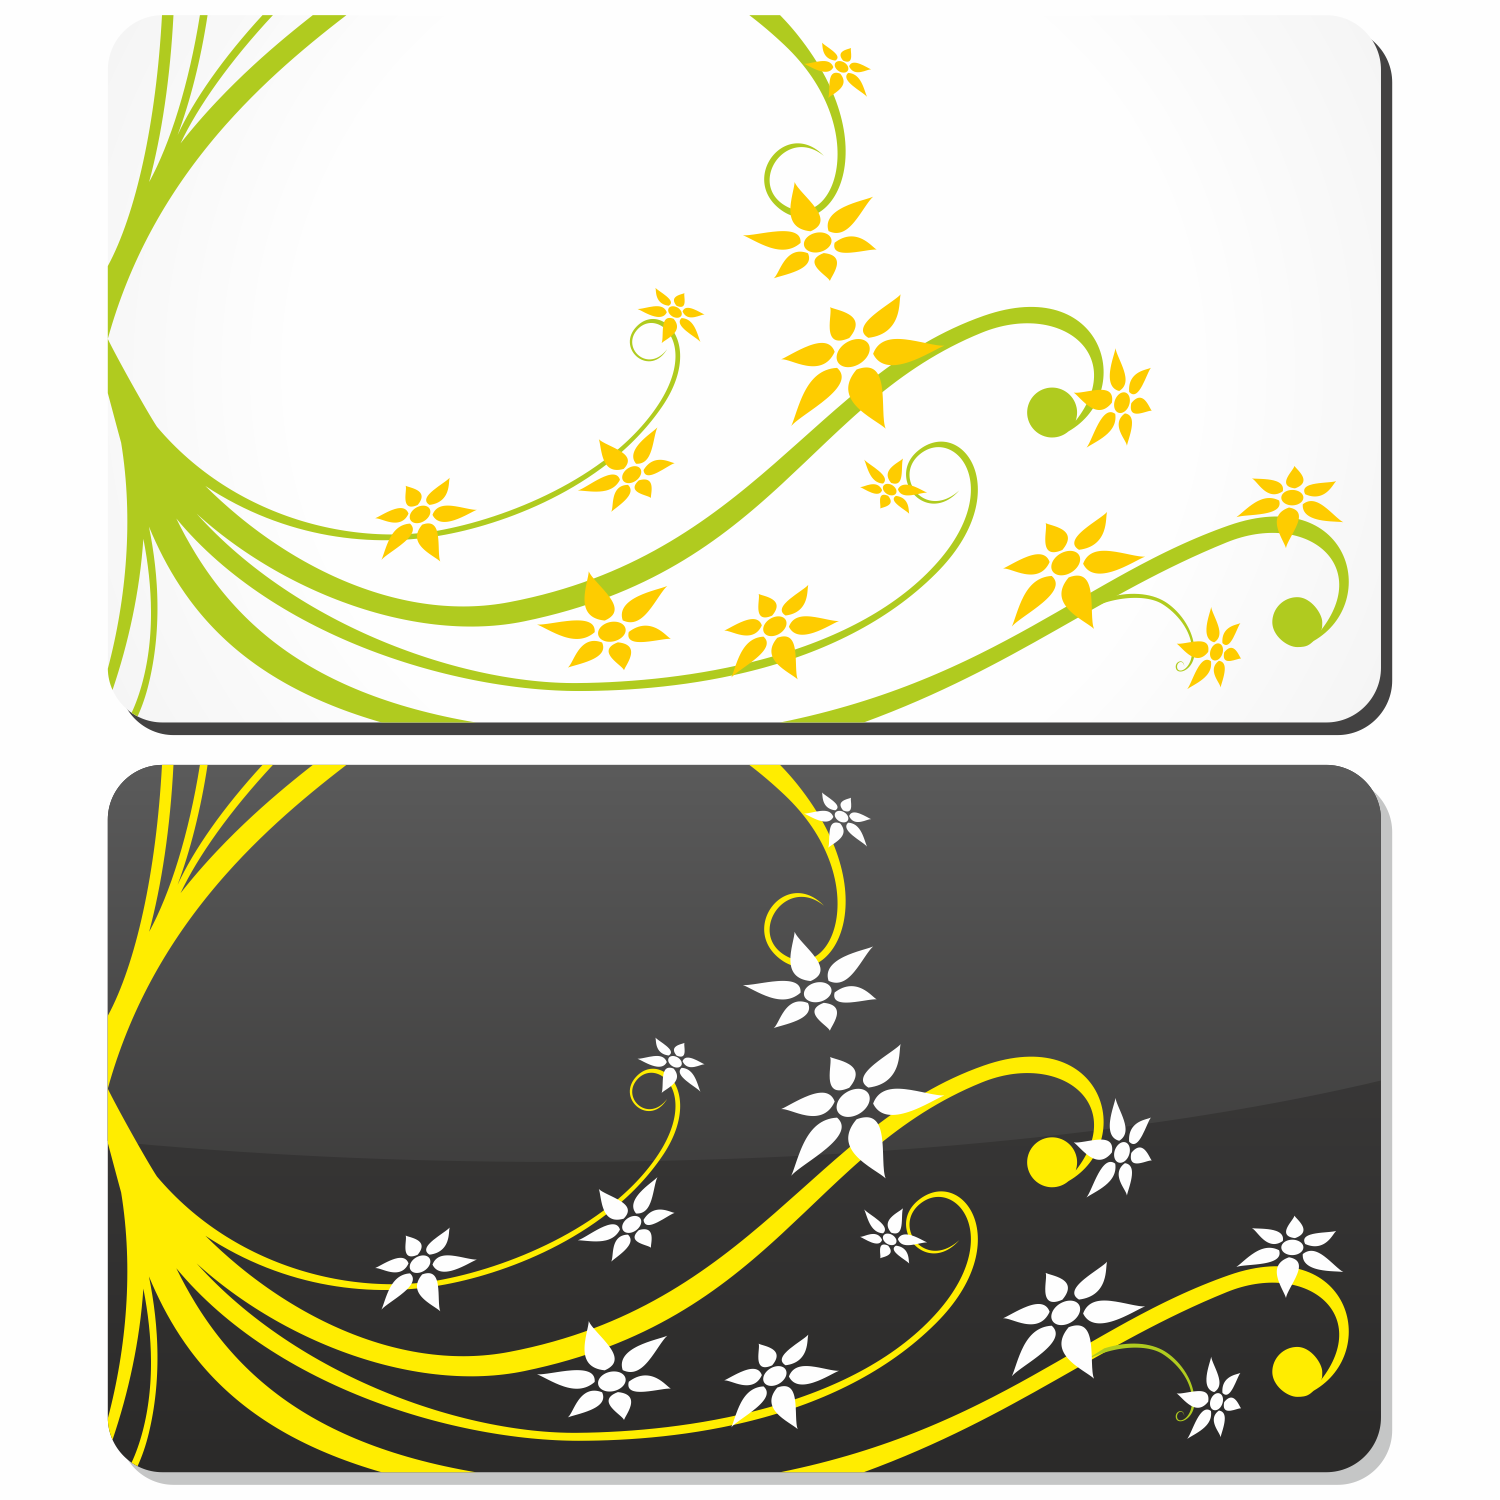 1500x1500 Vector For Free Use Gift Card With Floral Elements